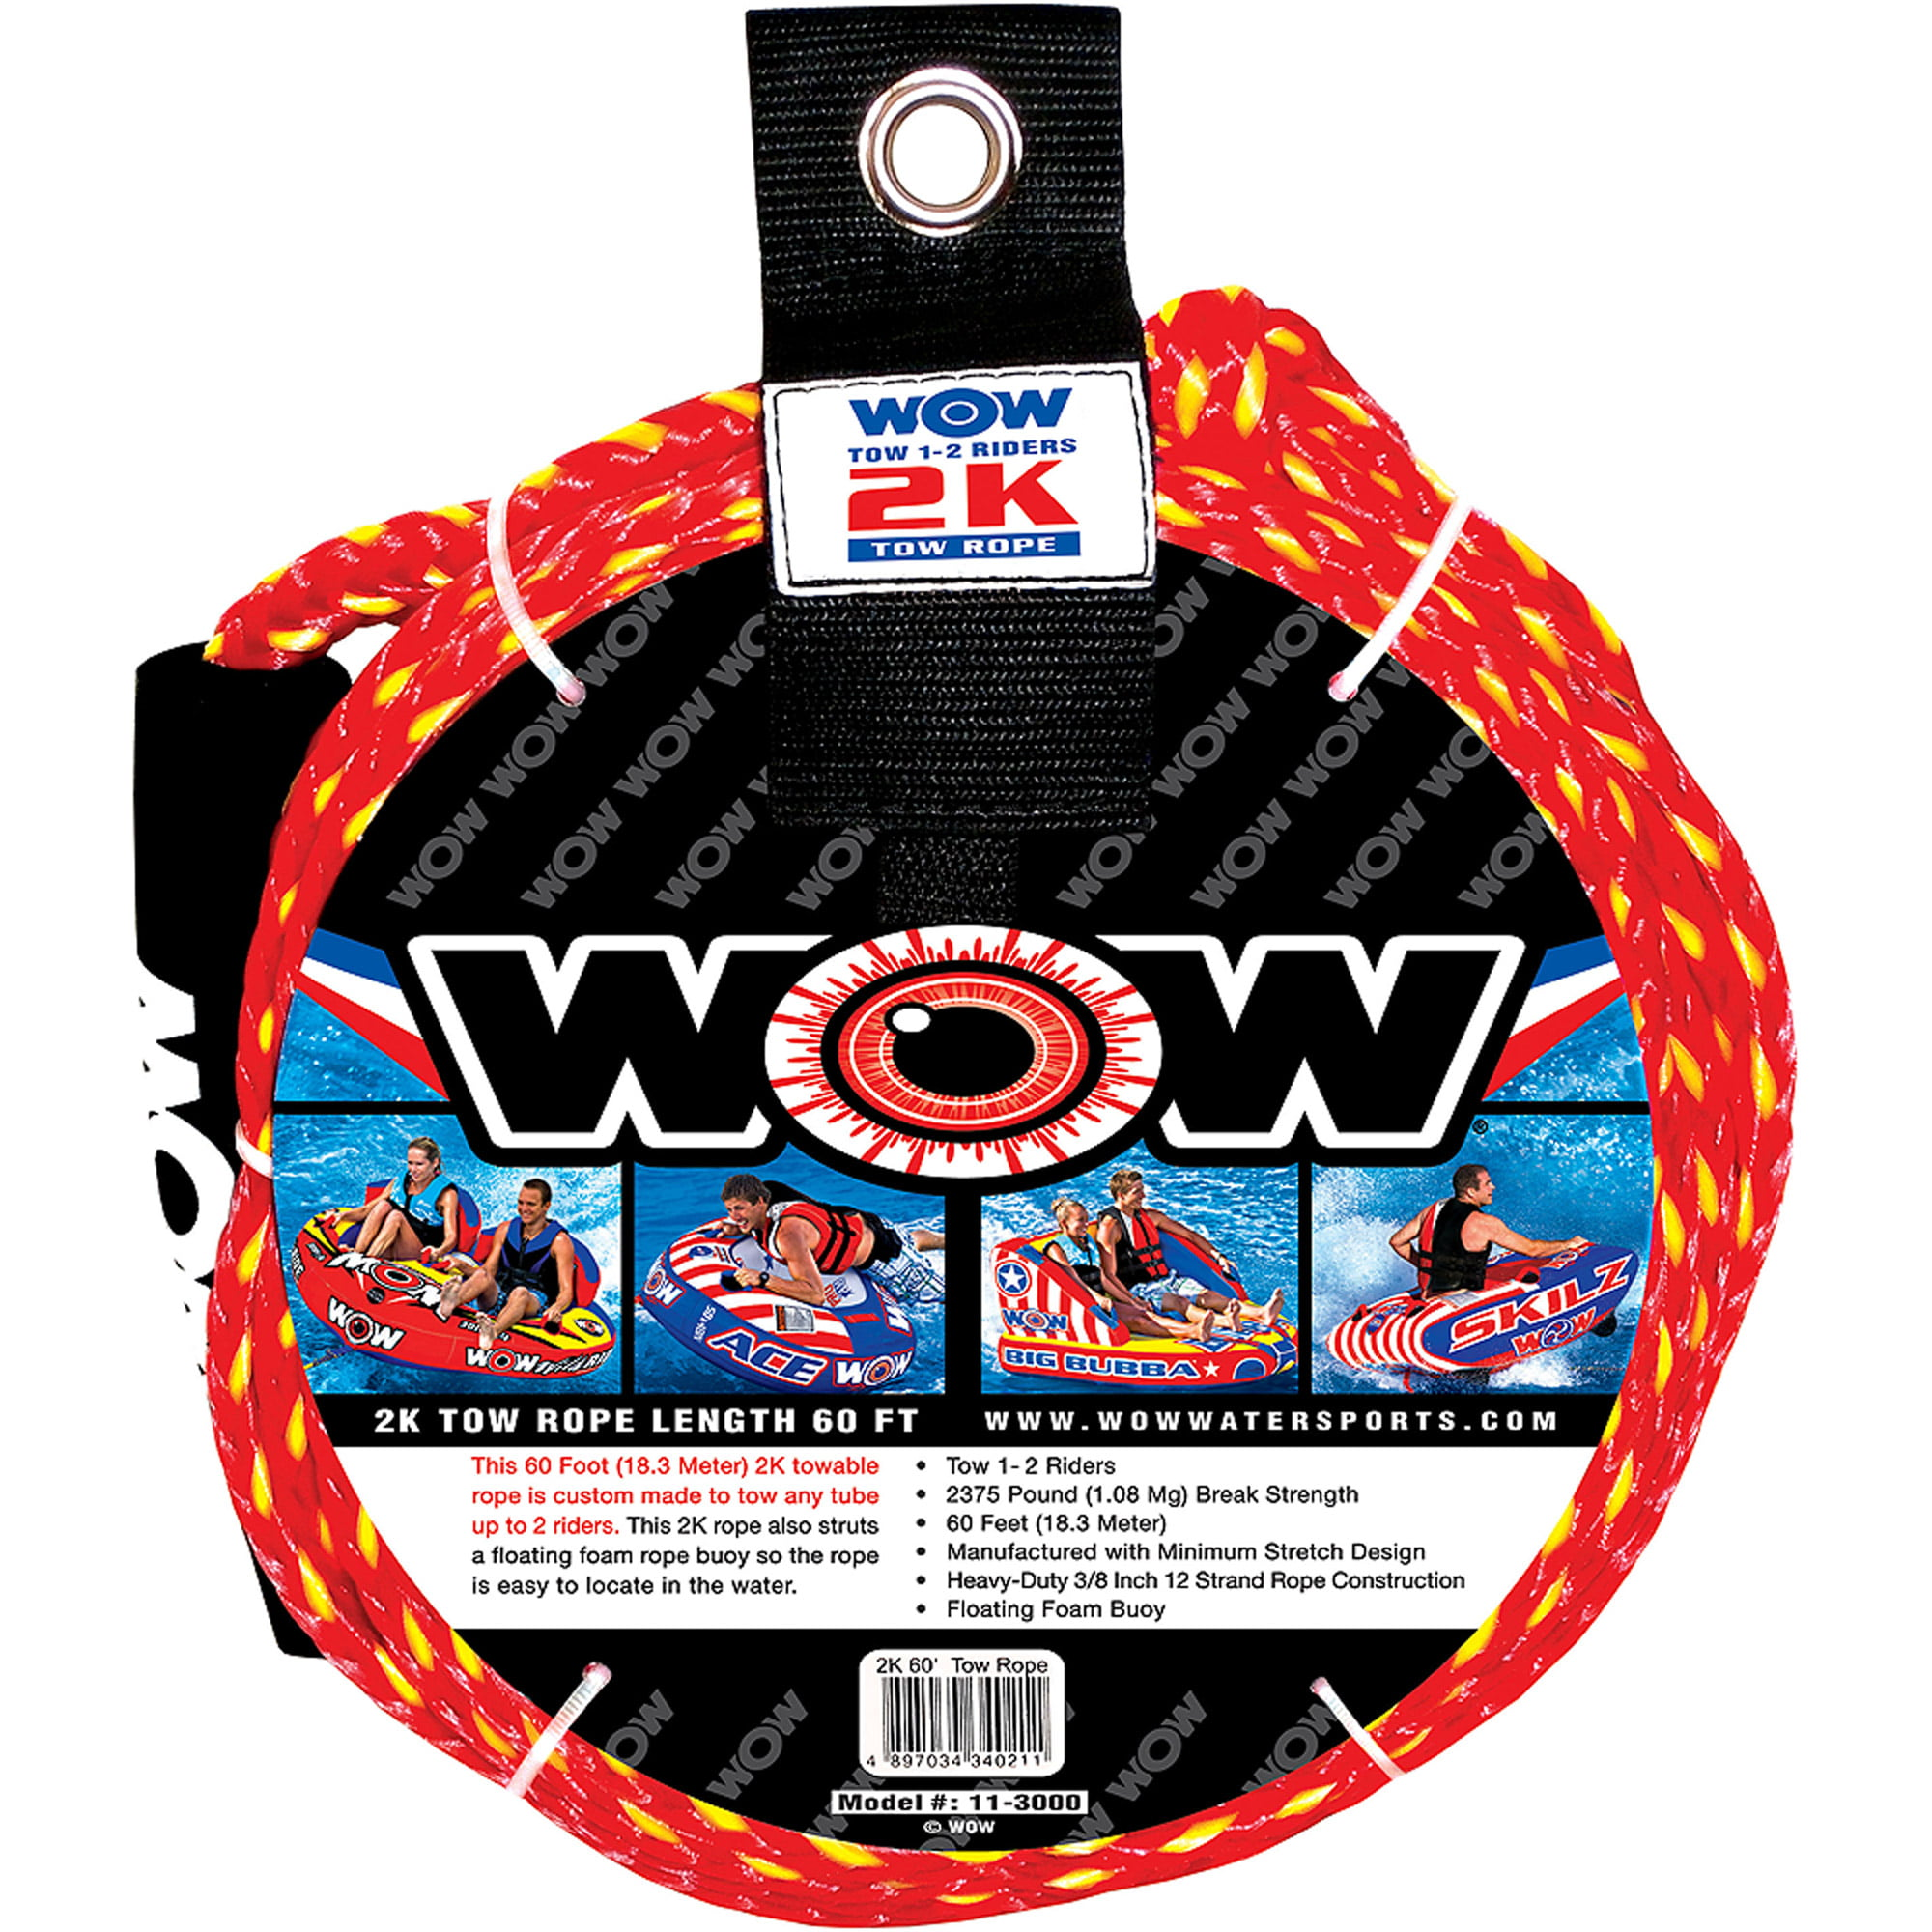 WOW 2K 60' Tow Rope by Generic